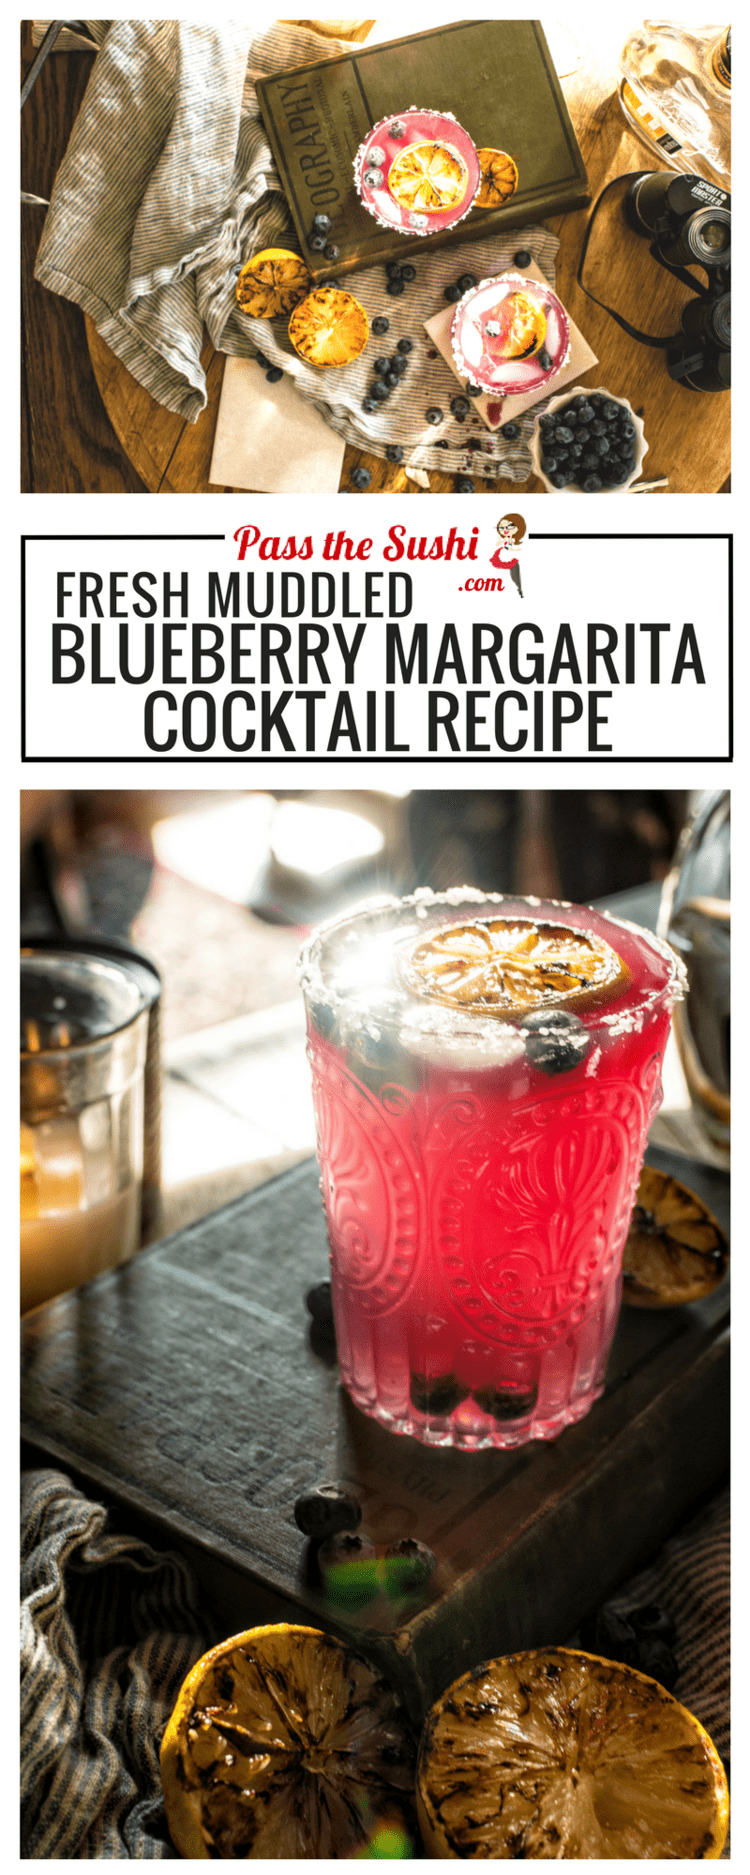 Fresh Muddled Blueberry Margarita Cocktail Recipe